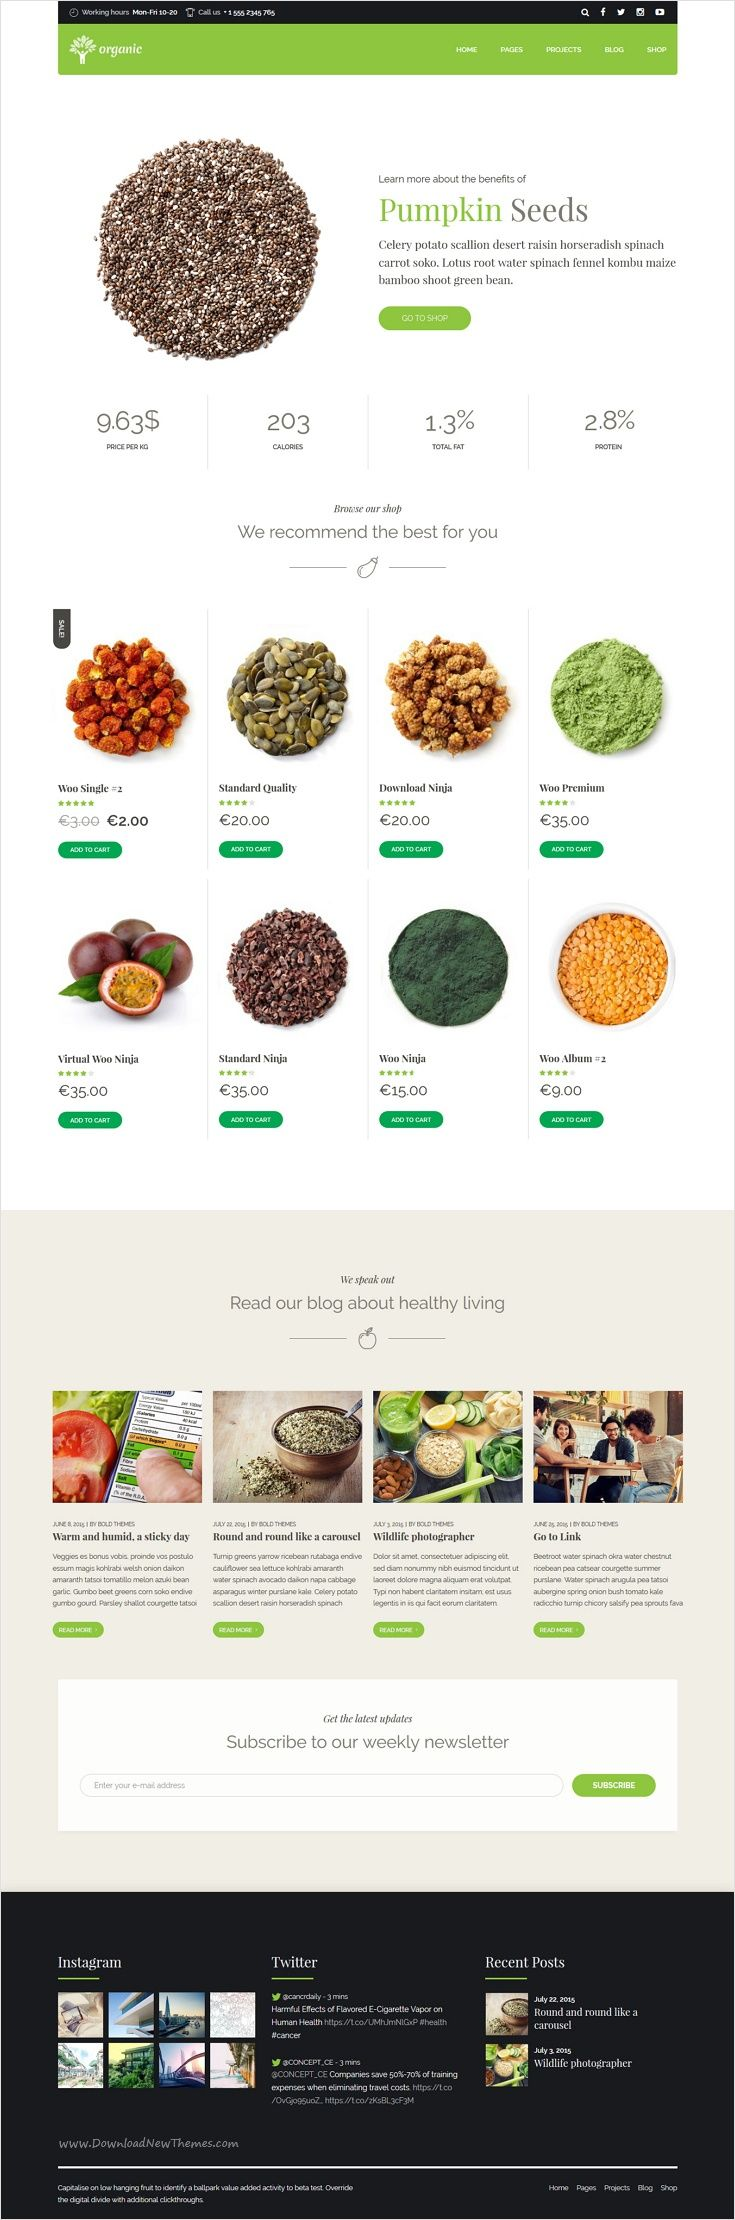 Organic Food is a awesome 9 in 1 #WordPress theme exclusively built for #food #store #webdev nutritionist, health coach, cooking school, delivery and farm websites download now➩ https://themeforest.net/item/organic-food-nutritionist-food-wordpress-theme/18029019?ref=Datasata